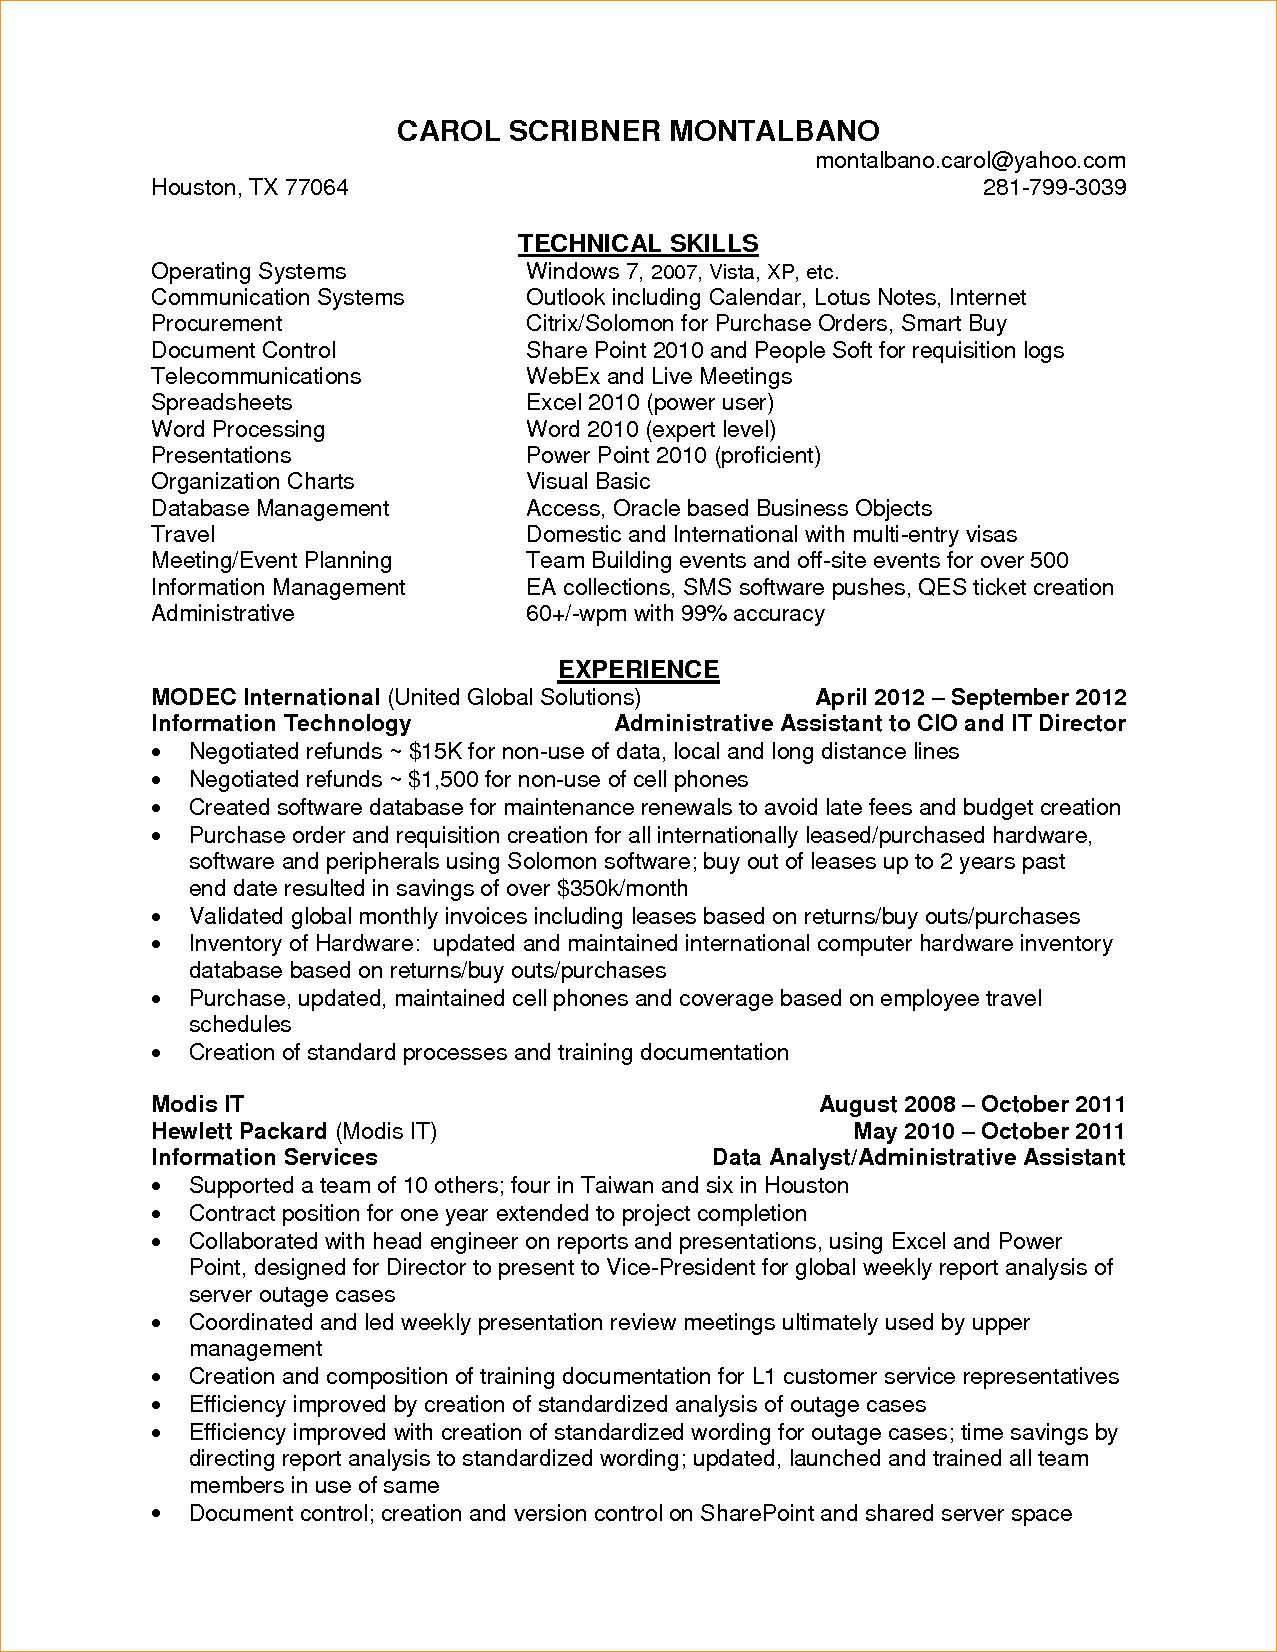 Administrative assistant Skills Business Proposal